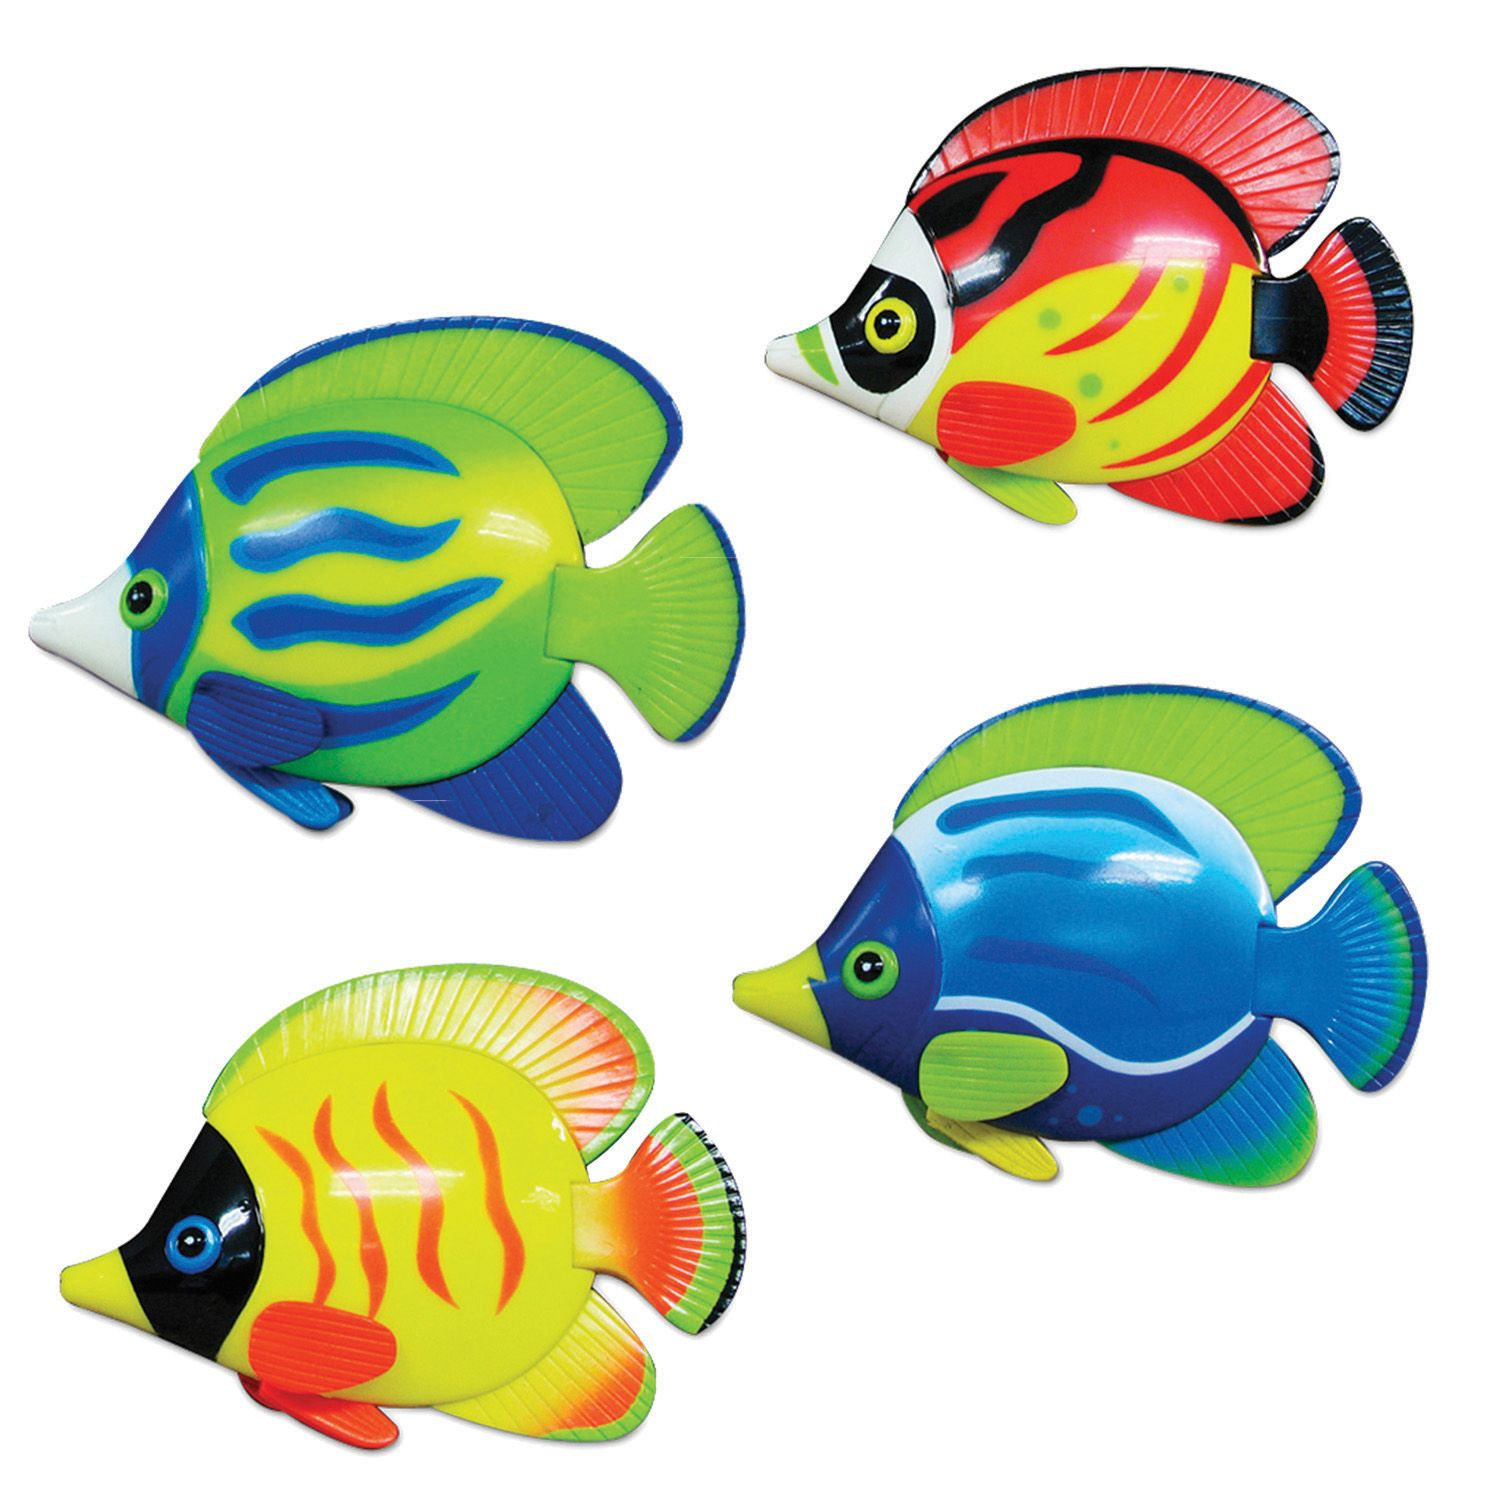 Poolmaster Jumbo Dive'N'Catch Fish Game Fishing game